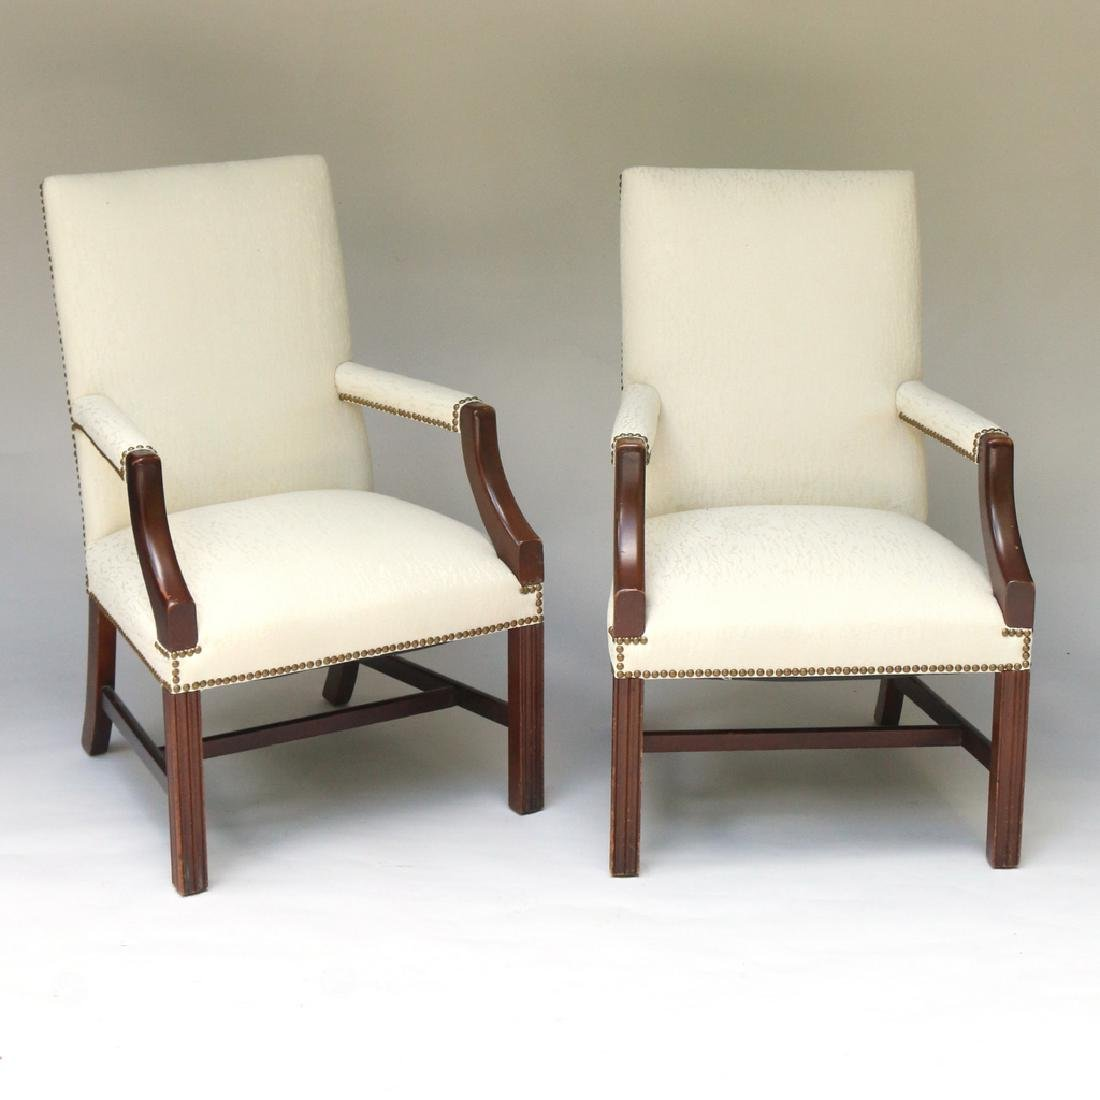 PAIR GEORGE III-STYLE MAHOGANY LOLLING CHAIRS